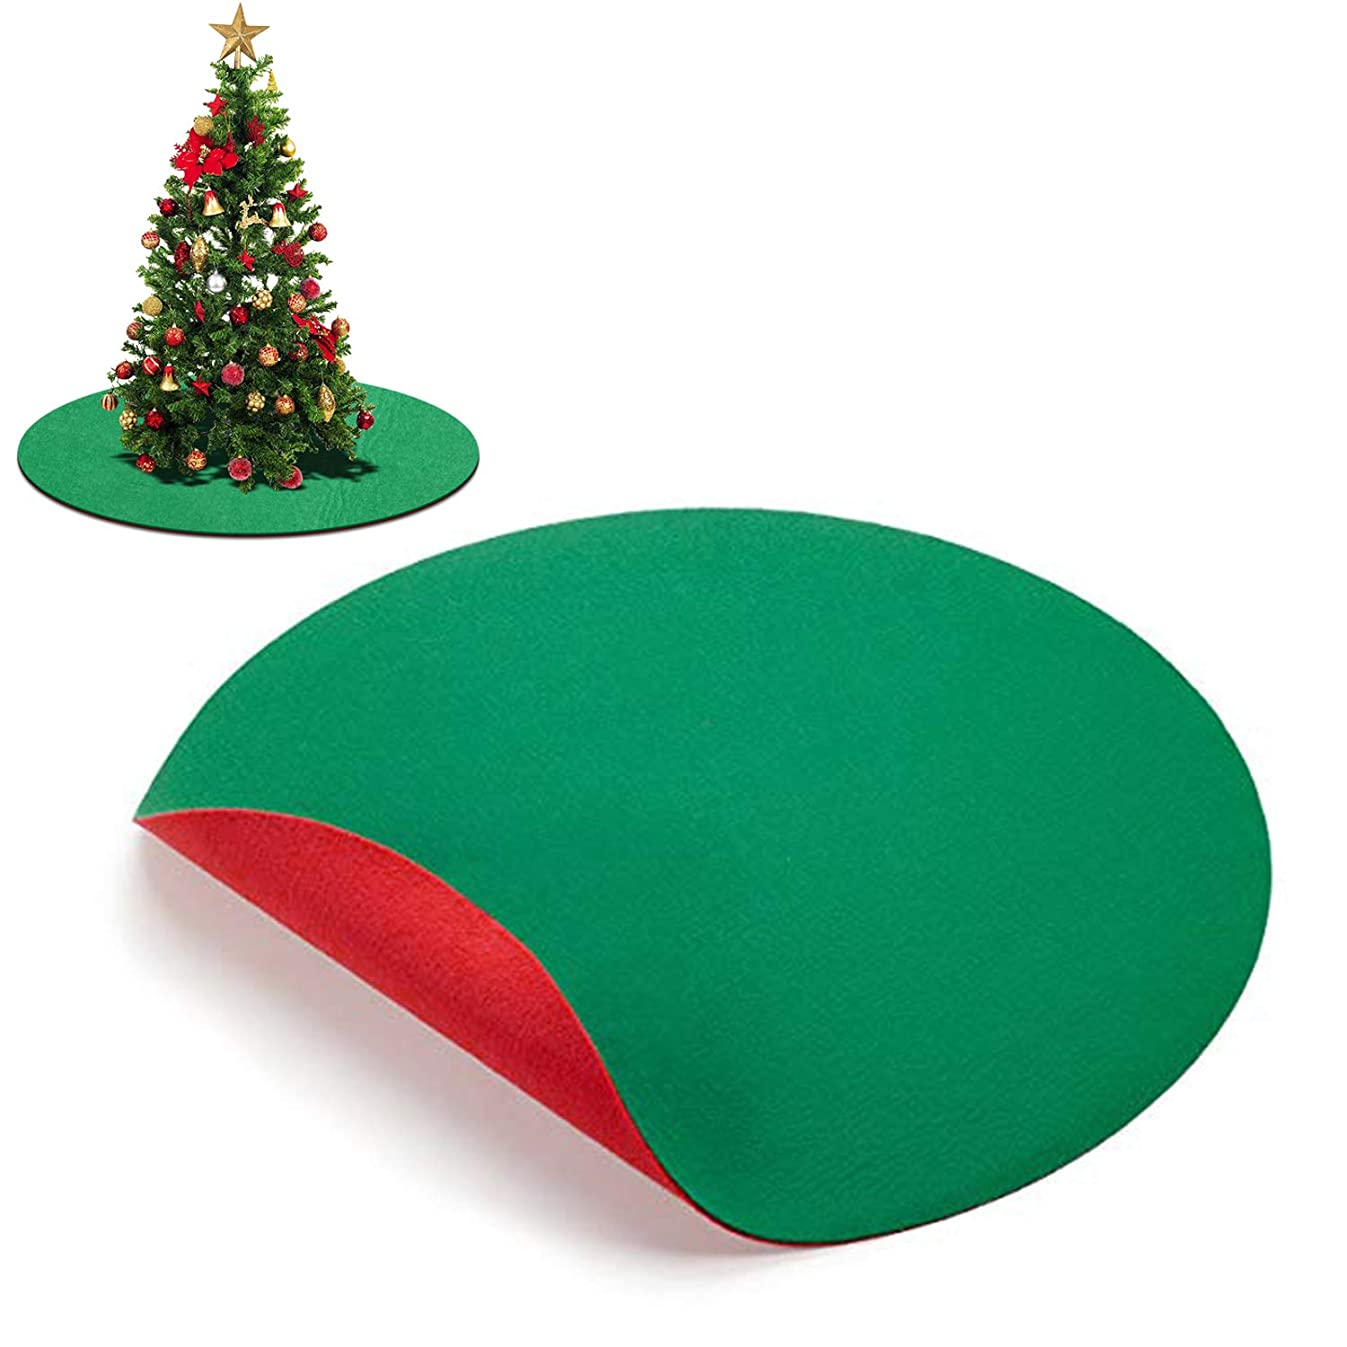 ABOAT 30 inches Red and Green Reversible Christmas Tree Stand Mat Accessory for Floor Protection and Holiday Party Decoration